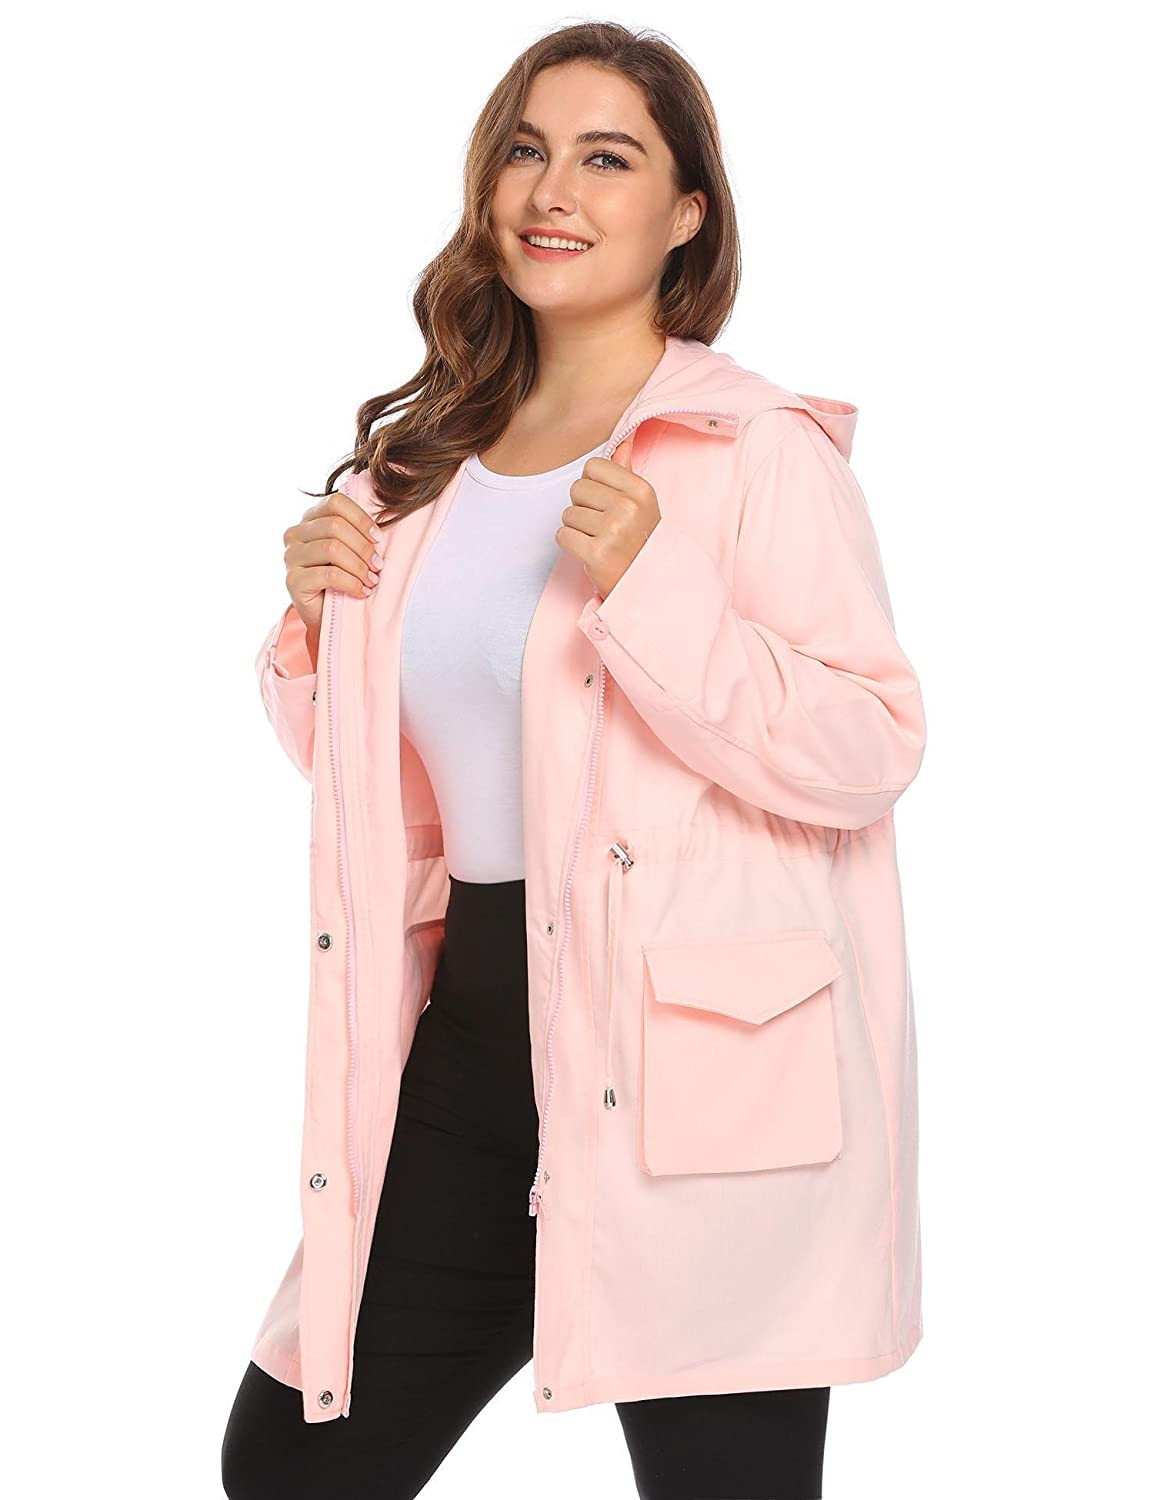 805ede0df10 Zeagoo Plus Size Fall Anorak Street Fashion Hoodies Active Lightweight Zip  Up Women Safari Jacket